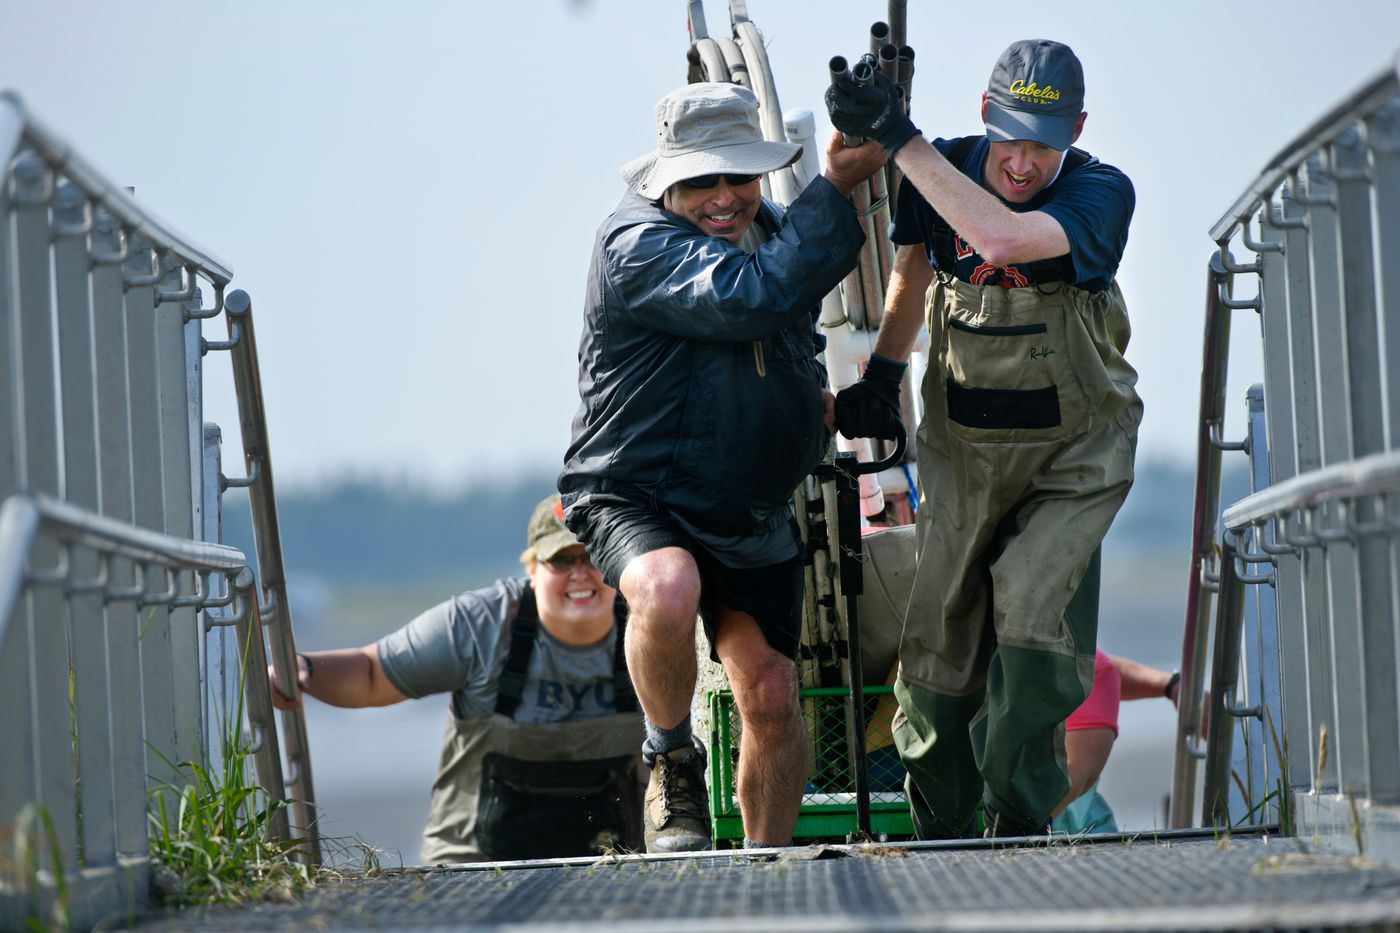 Paul Becker and Tim Platt pull their dipnetting gear on a cart as they leave the Kenai River. (Marc Lester / ADN)